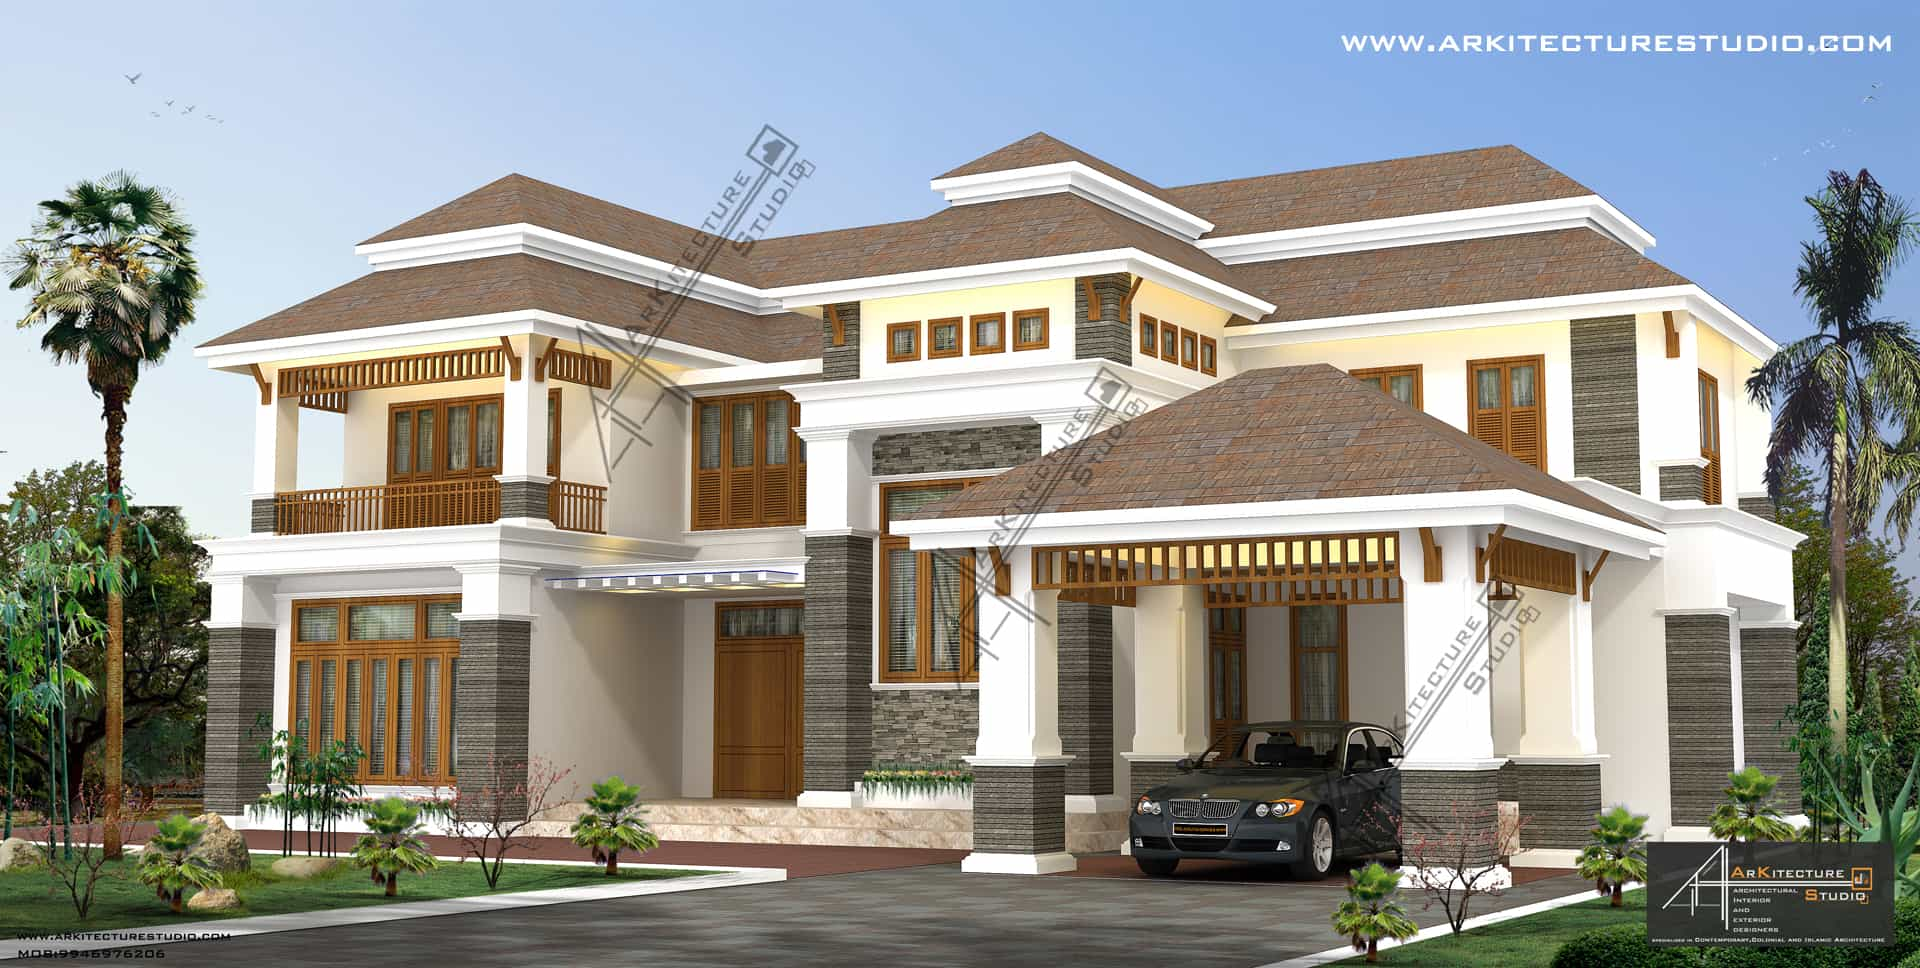 Colonial Style House Designs In Kerala At 3500 Sqft 5000: 3500 sq ft house plans two stories